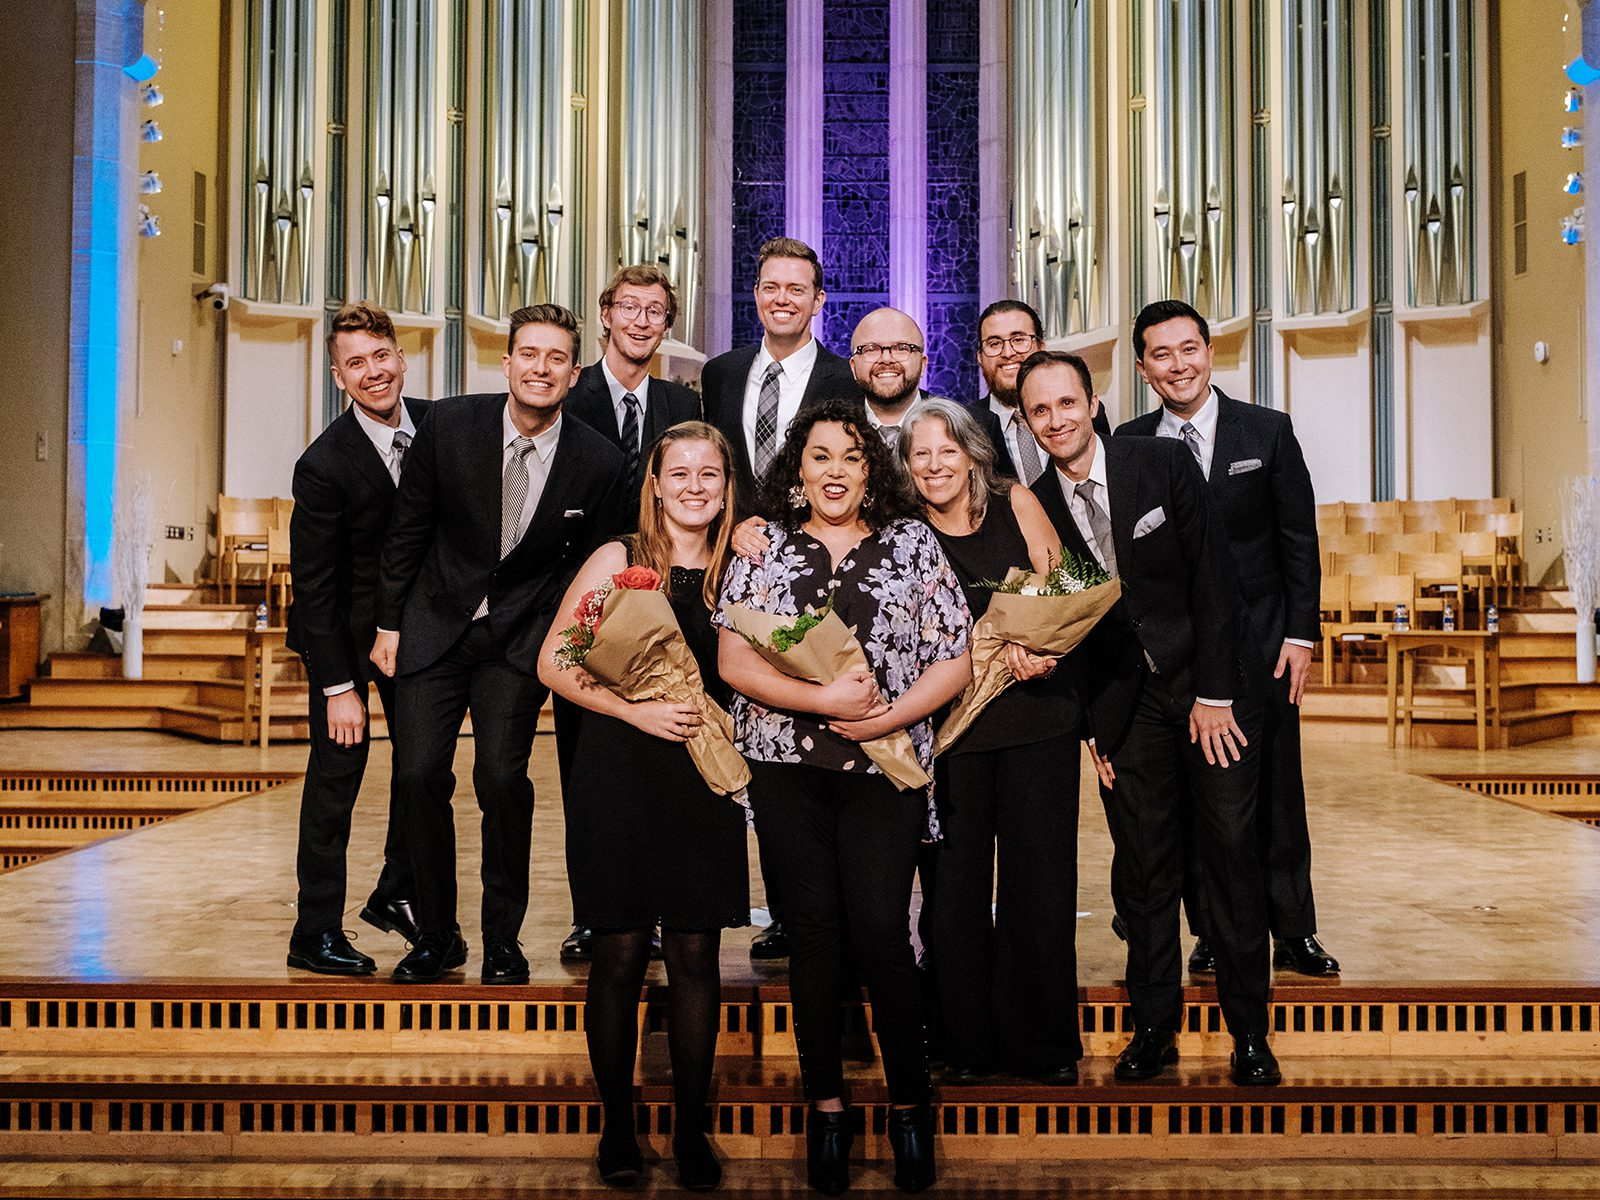 Grace Brigham '20 poses with Cantus after the performance. Photo by Steven Garcia '20.